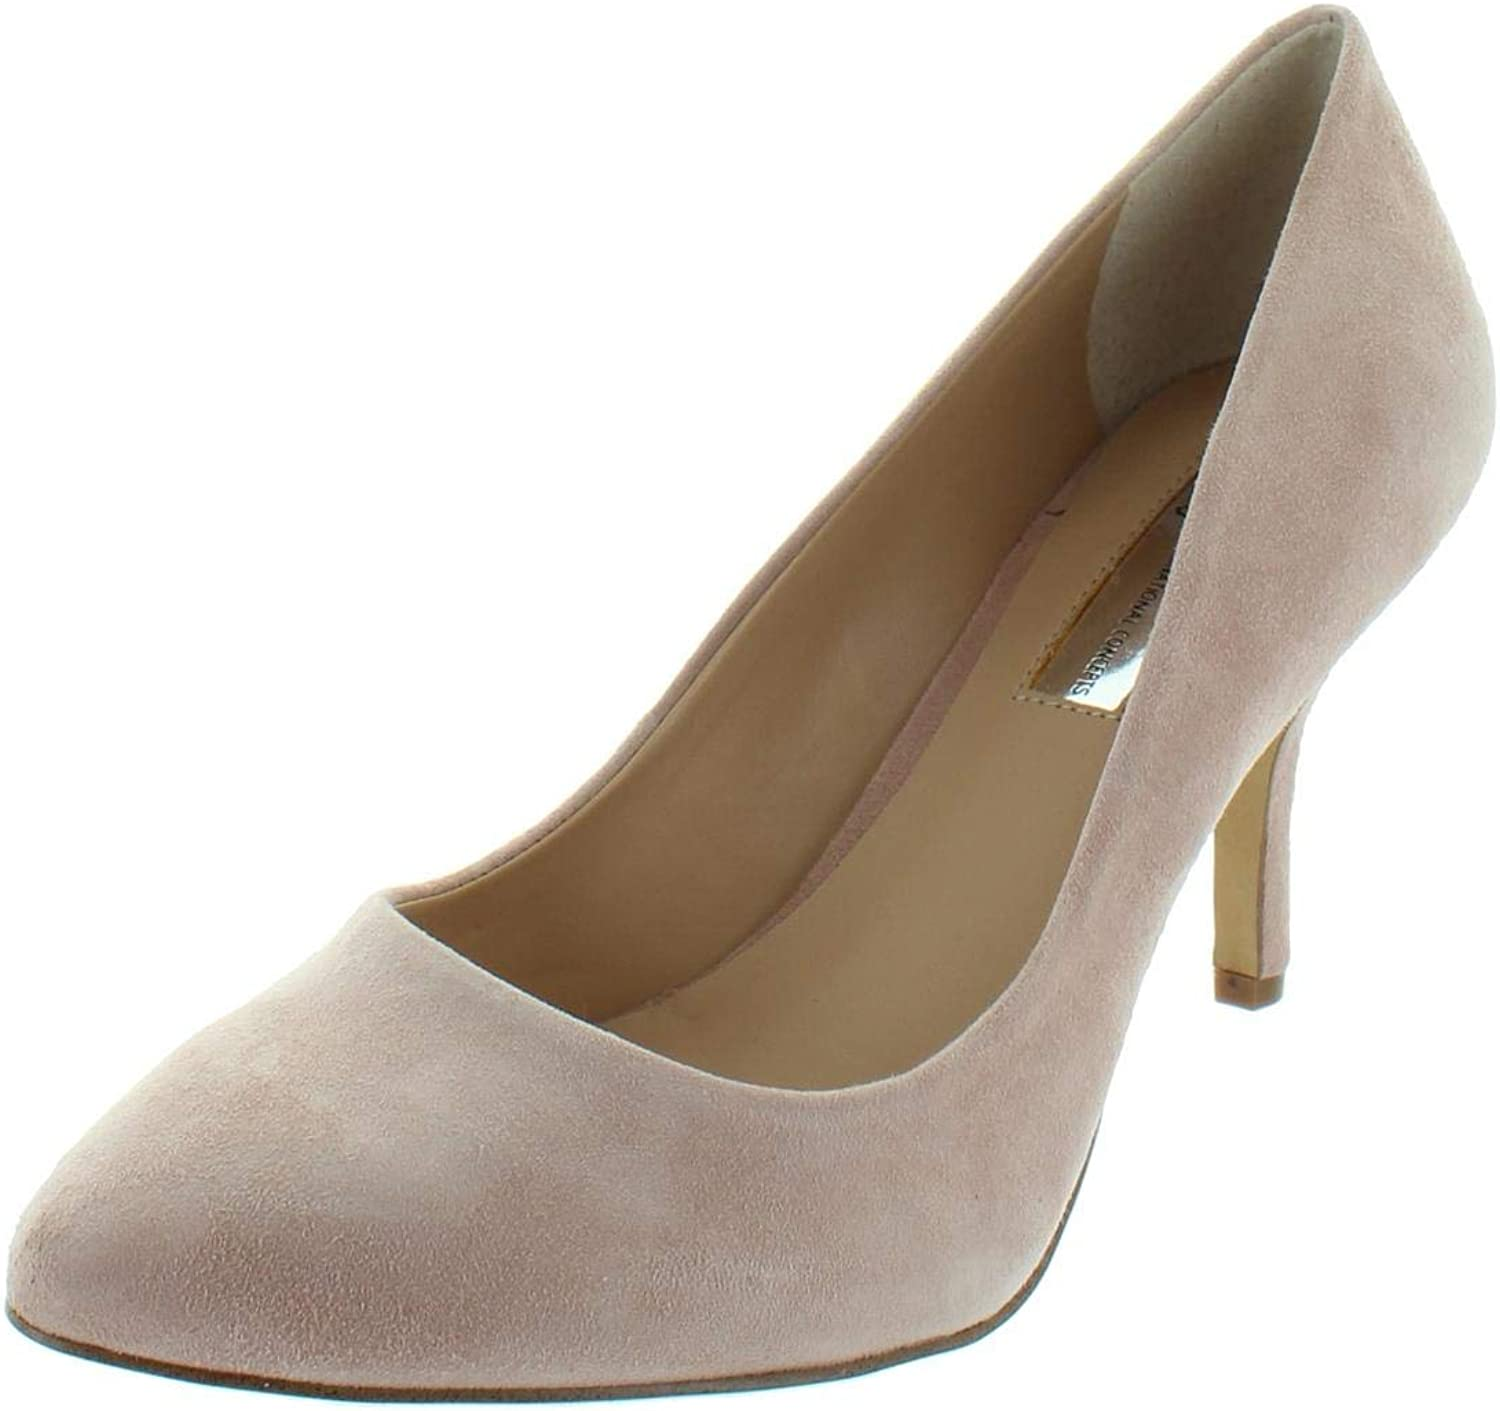 Inc Womens Zitah Solid Almond Toe Pumps